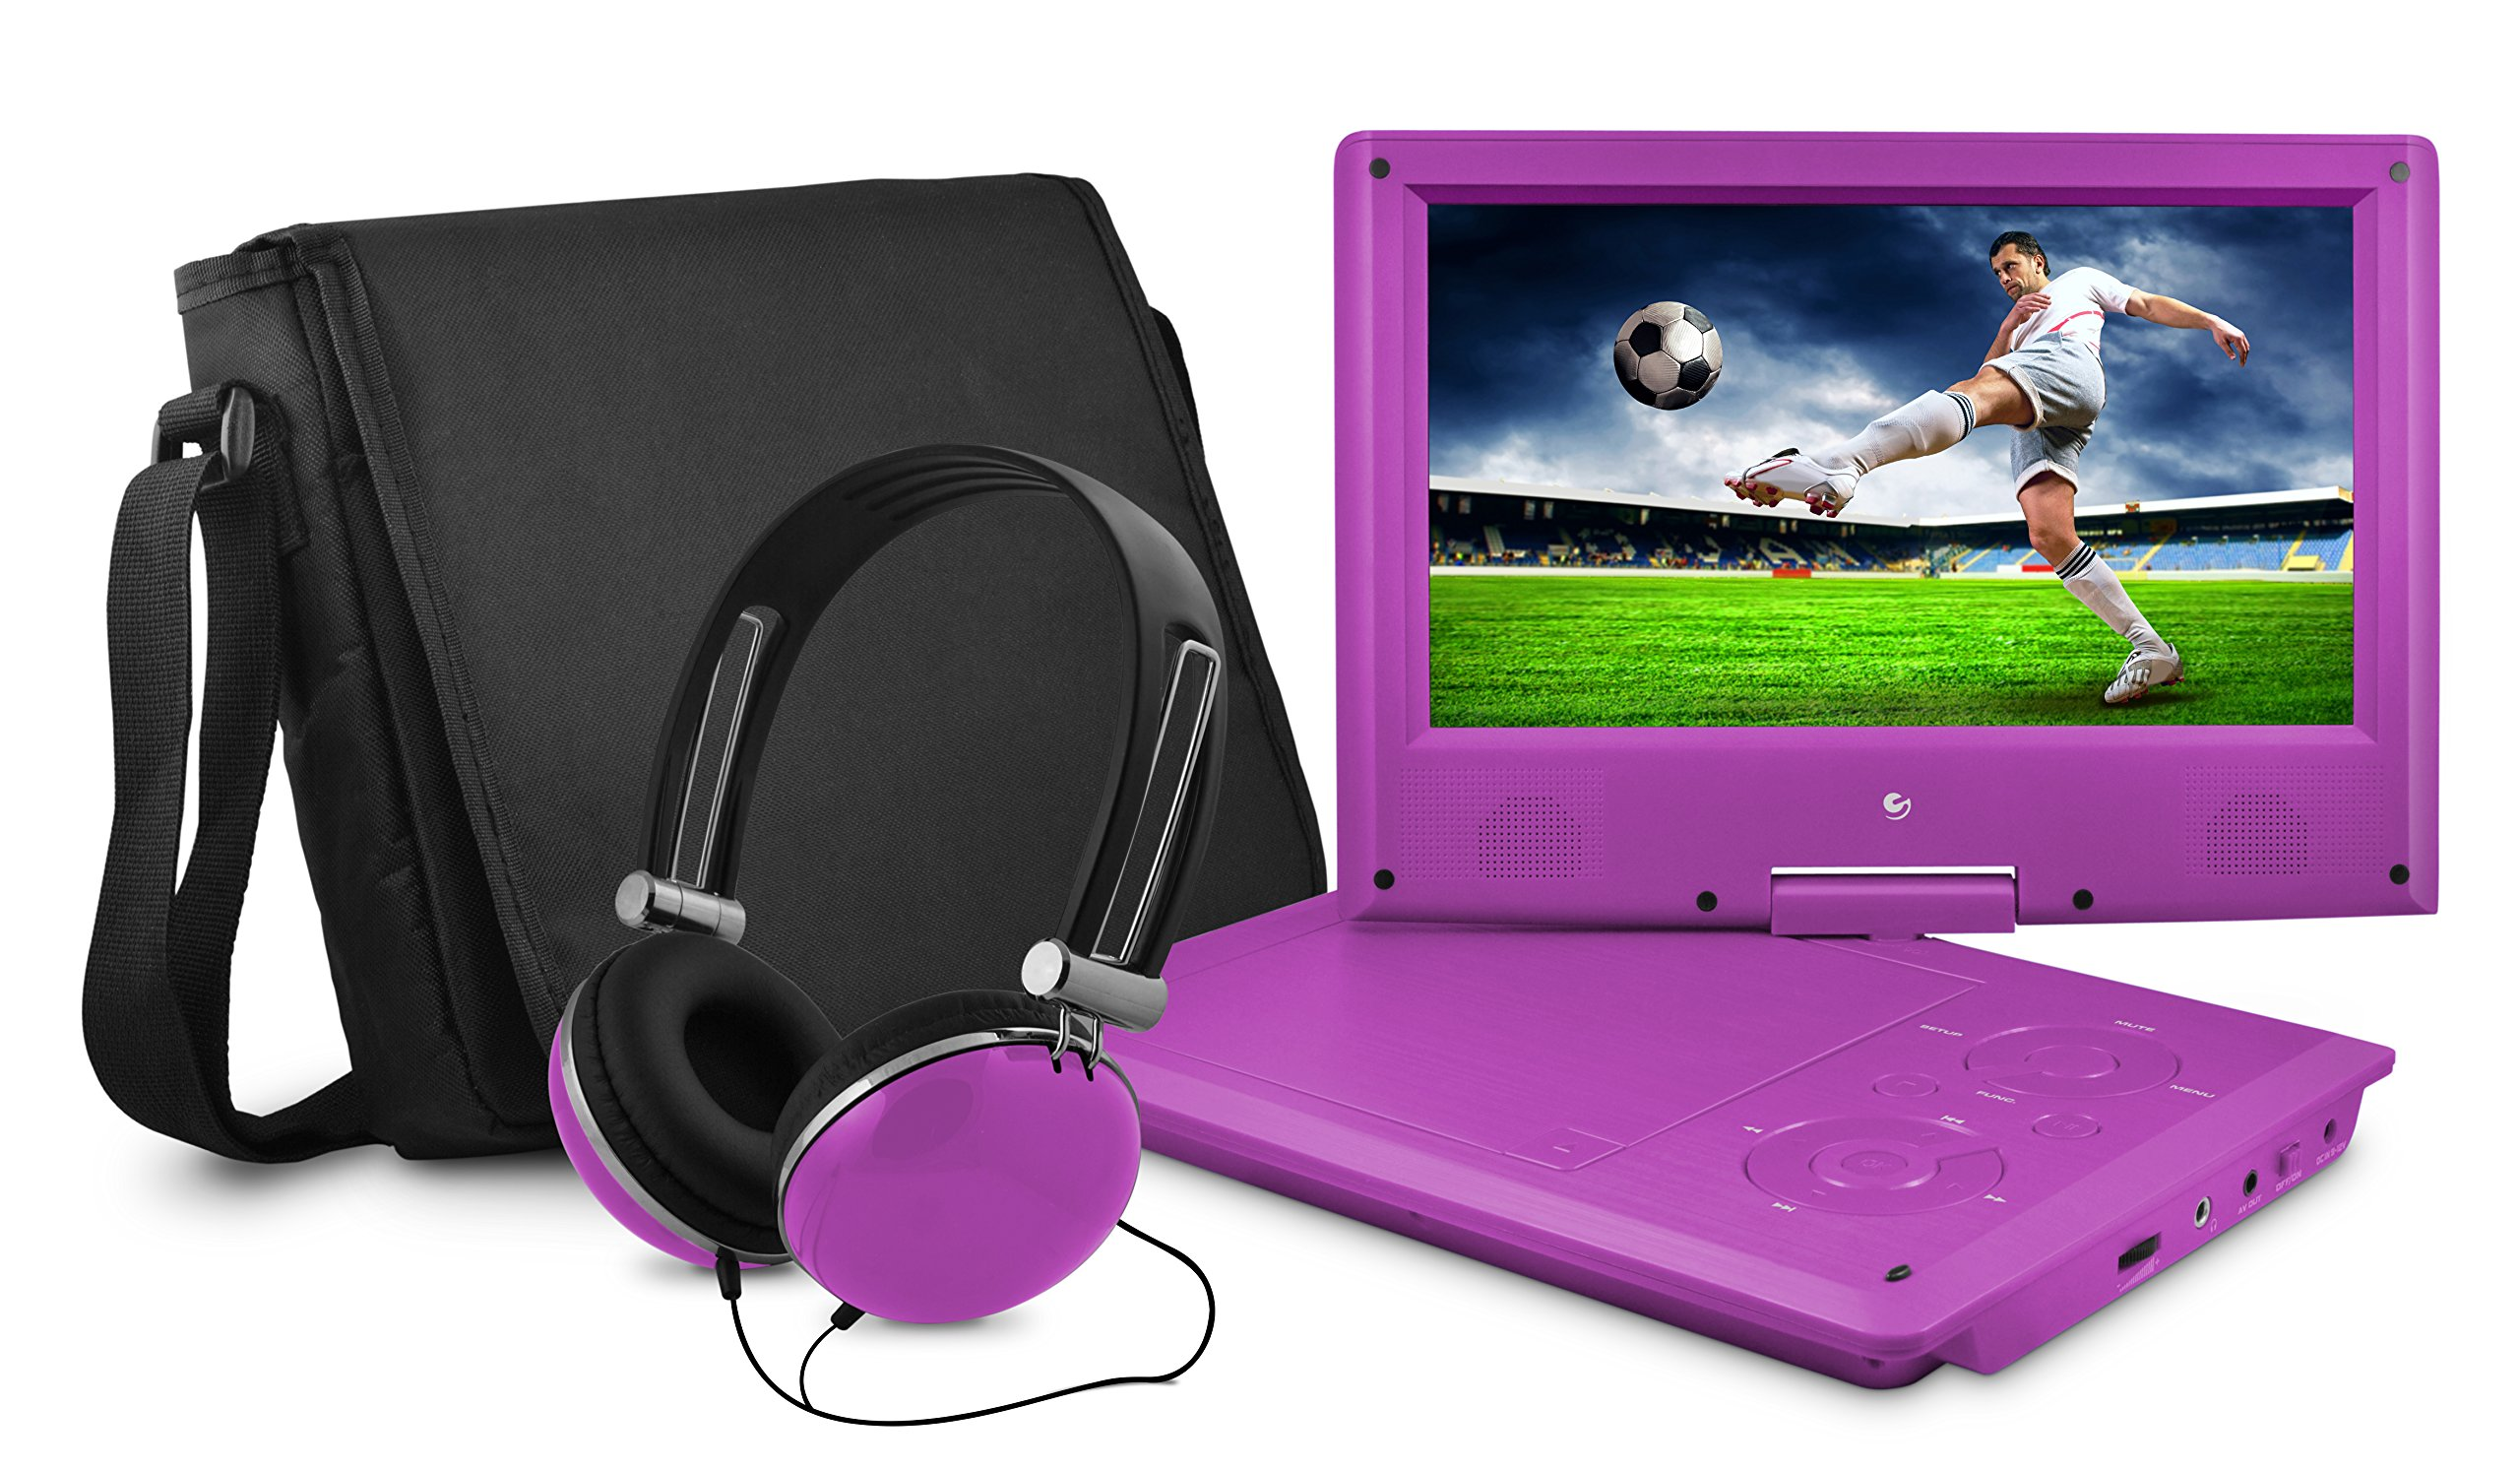 Ematic Portable DVD Player with 9-inch LCD Swivel Screen, Travel Bag and Headphones, Purple